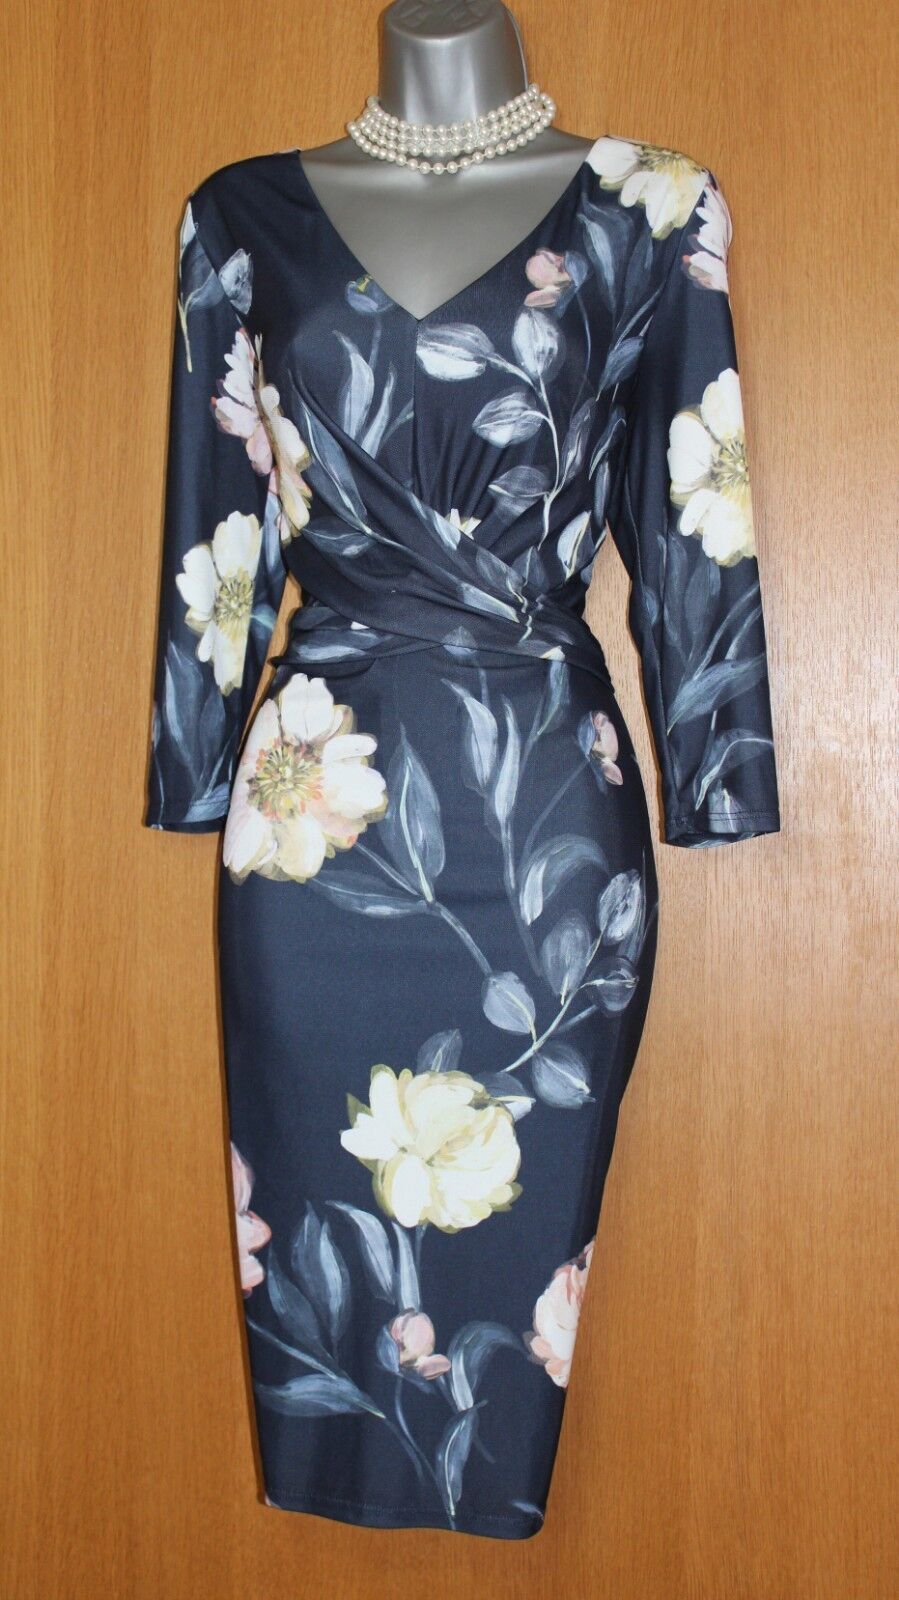 Phase Eight Marina Floral Print 3 4 Sleeves Jersey Jersey Jersey Casual Work Dress UK10 EU38 fe7a42